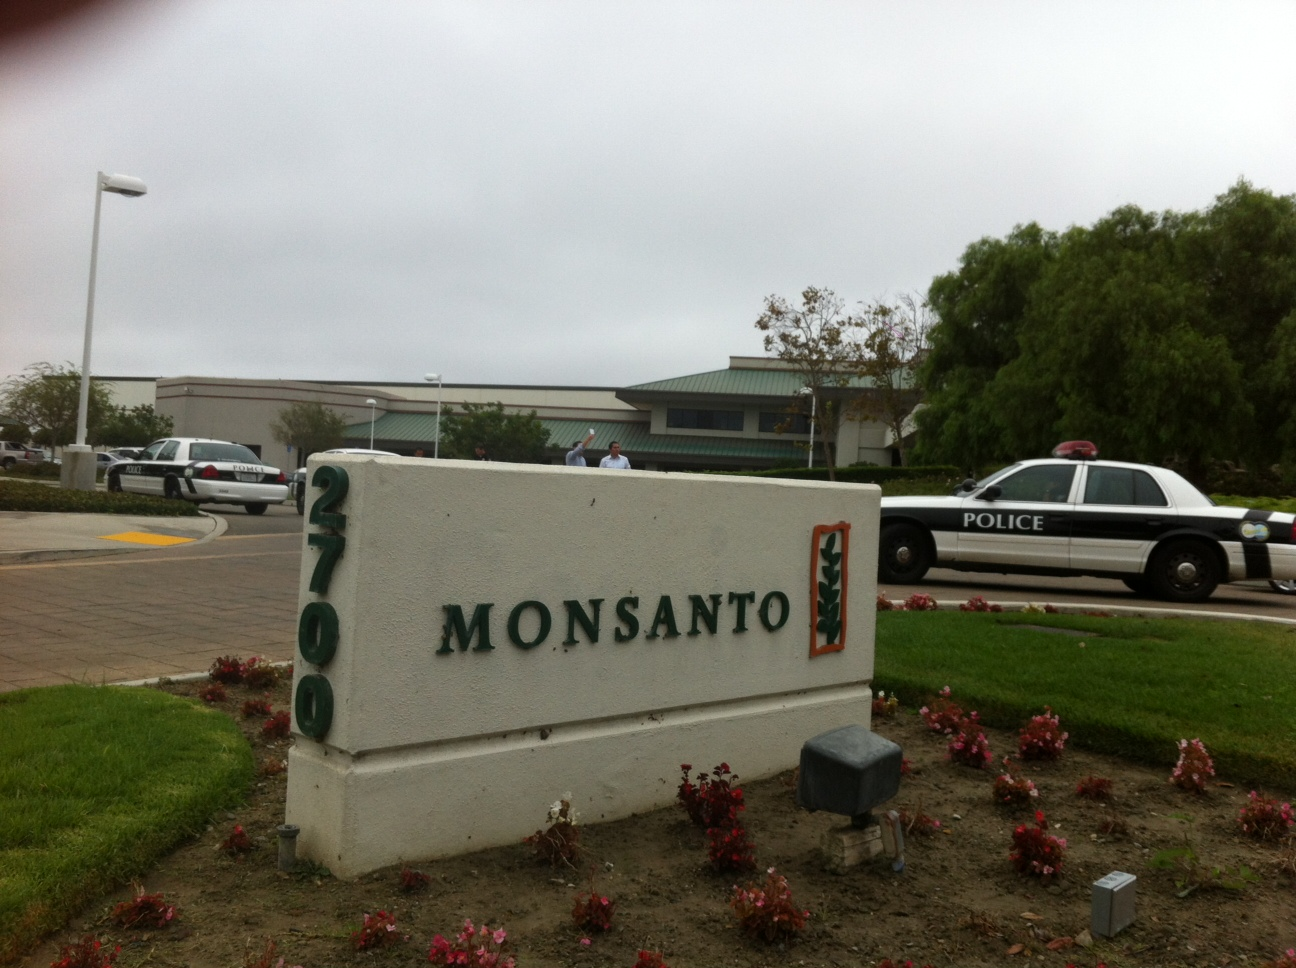 oxnard action photo 11 Photos of GCU Field Agents occupying Monsantos Oxnard facility Seminis Protest Oxnard Occupy Monsanto GMO Seeds GCU Direct Action Decontamination Event CA